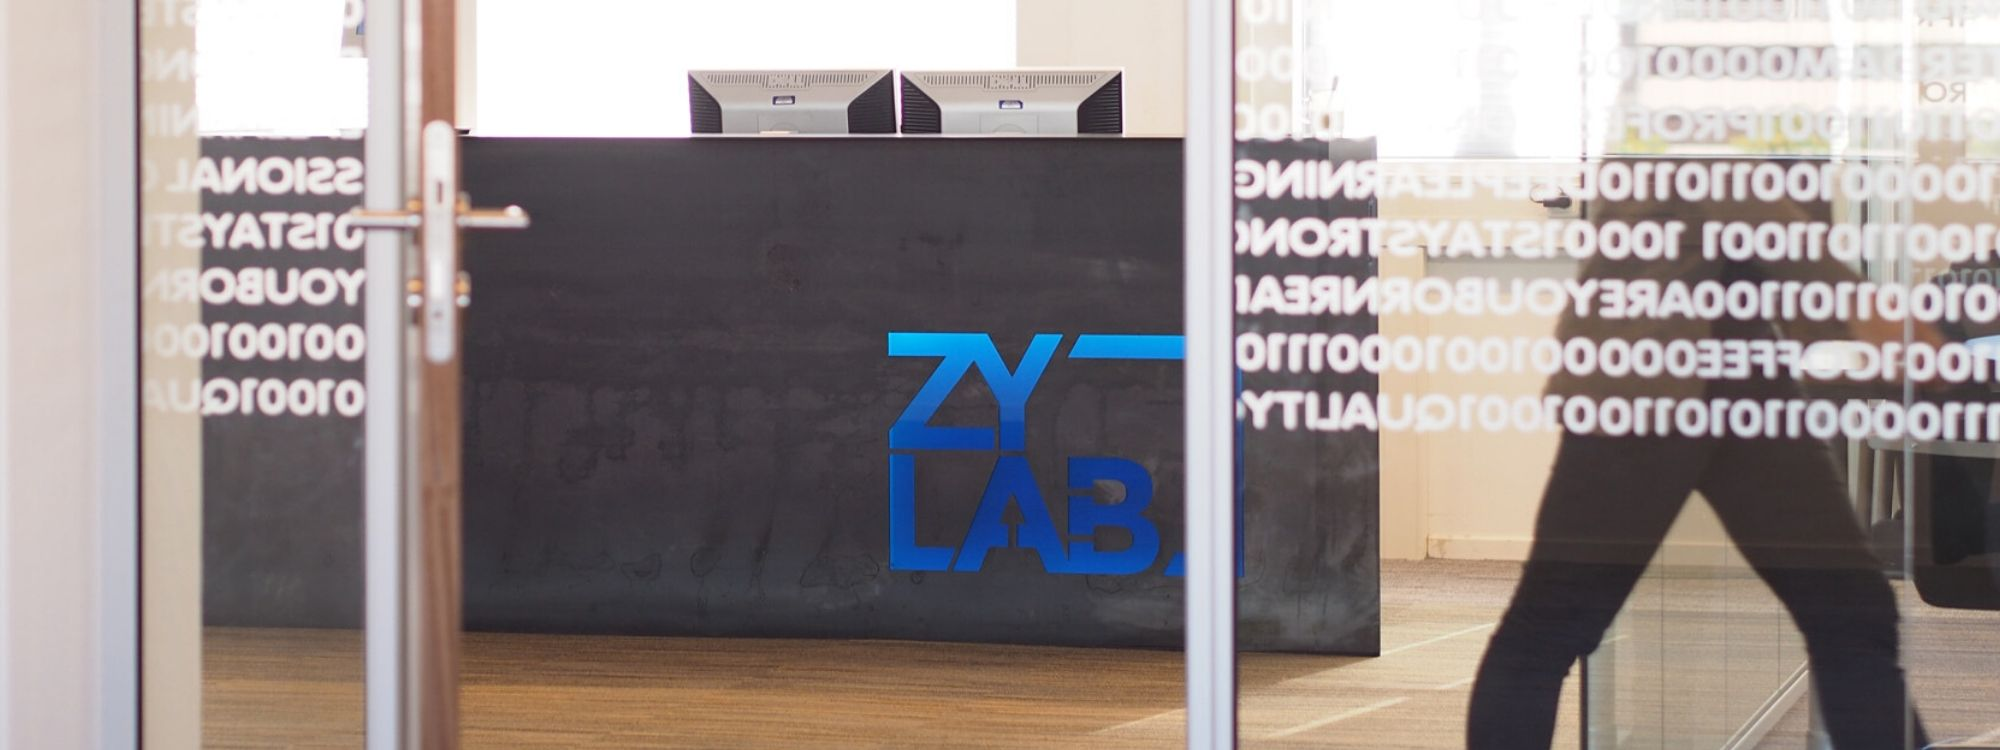 Website banner ZyLAB Reception Boardroom 2